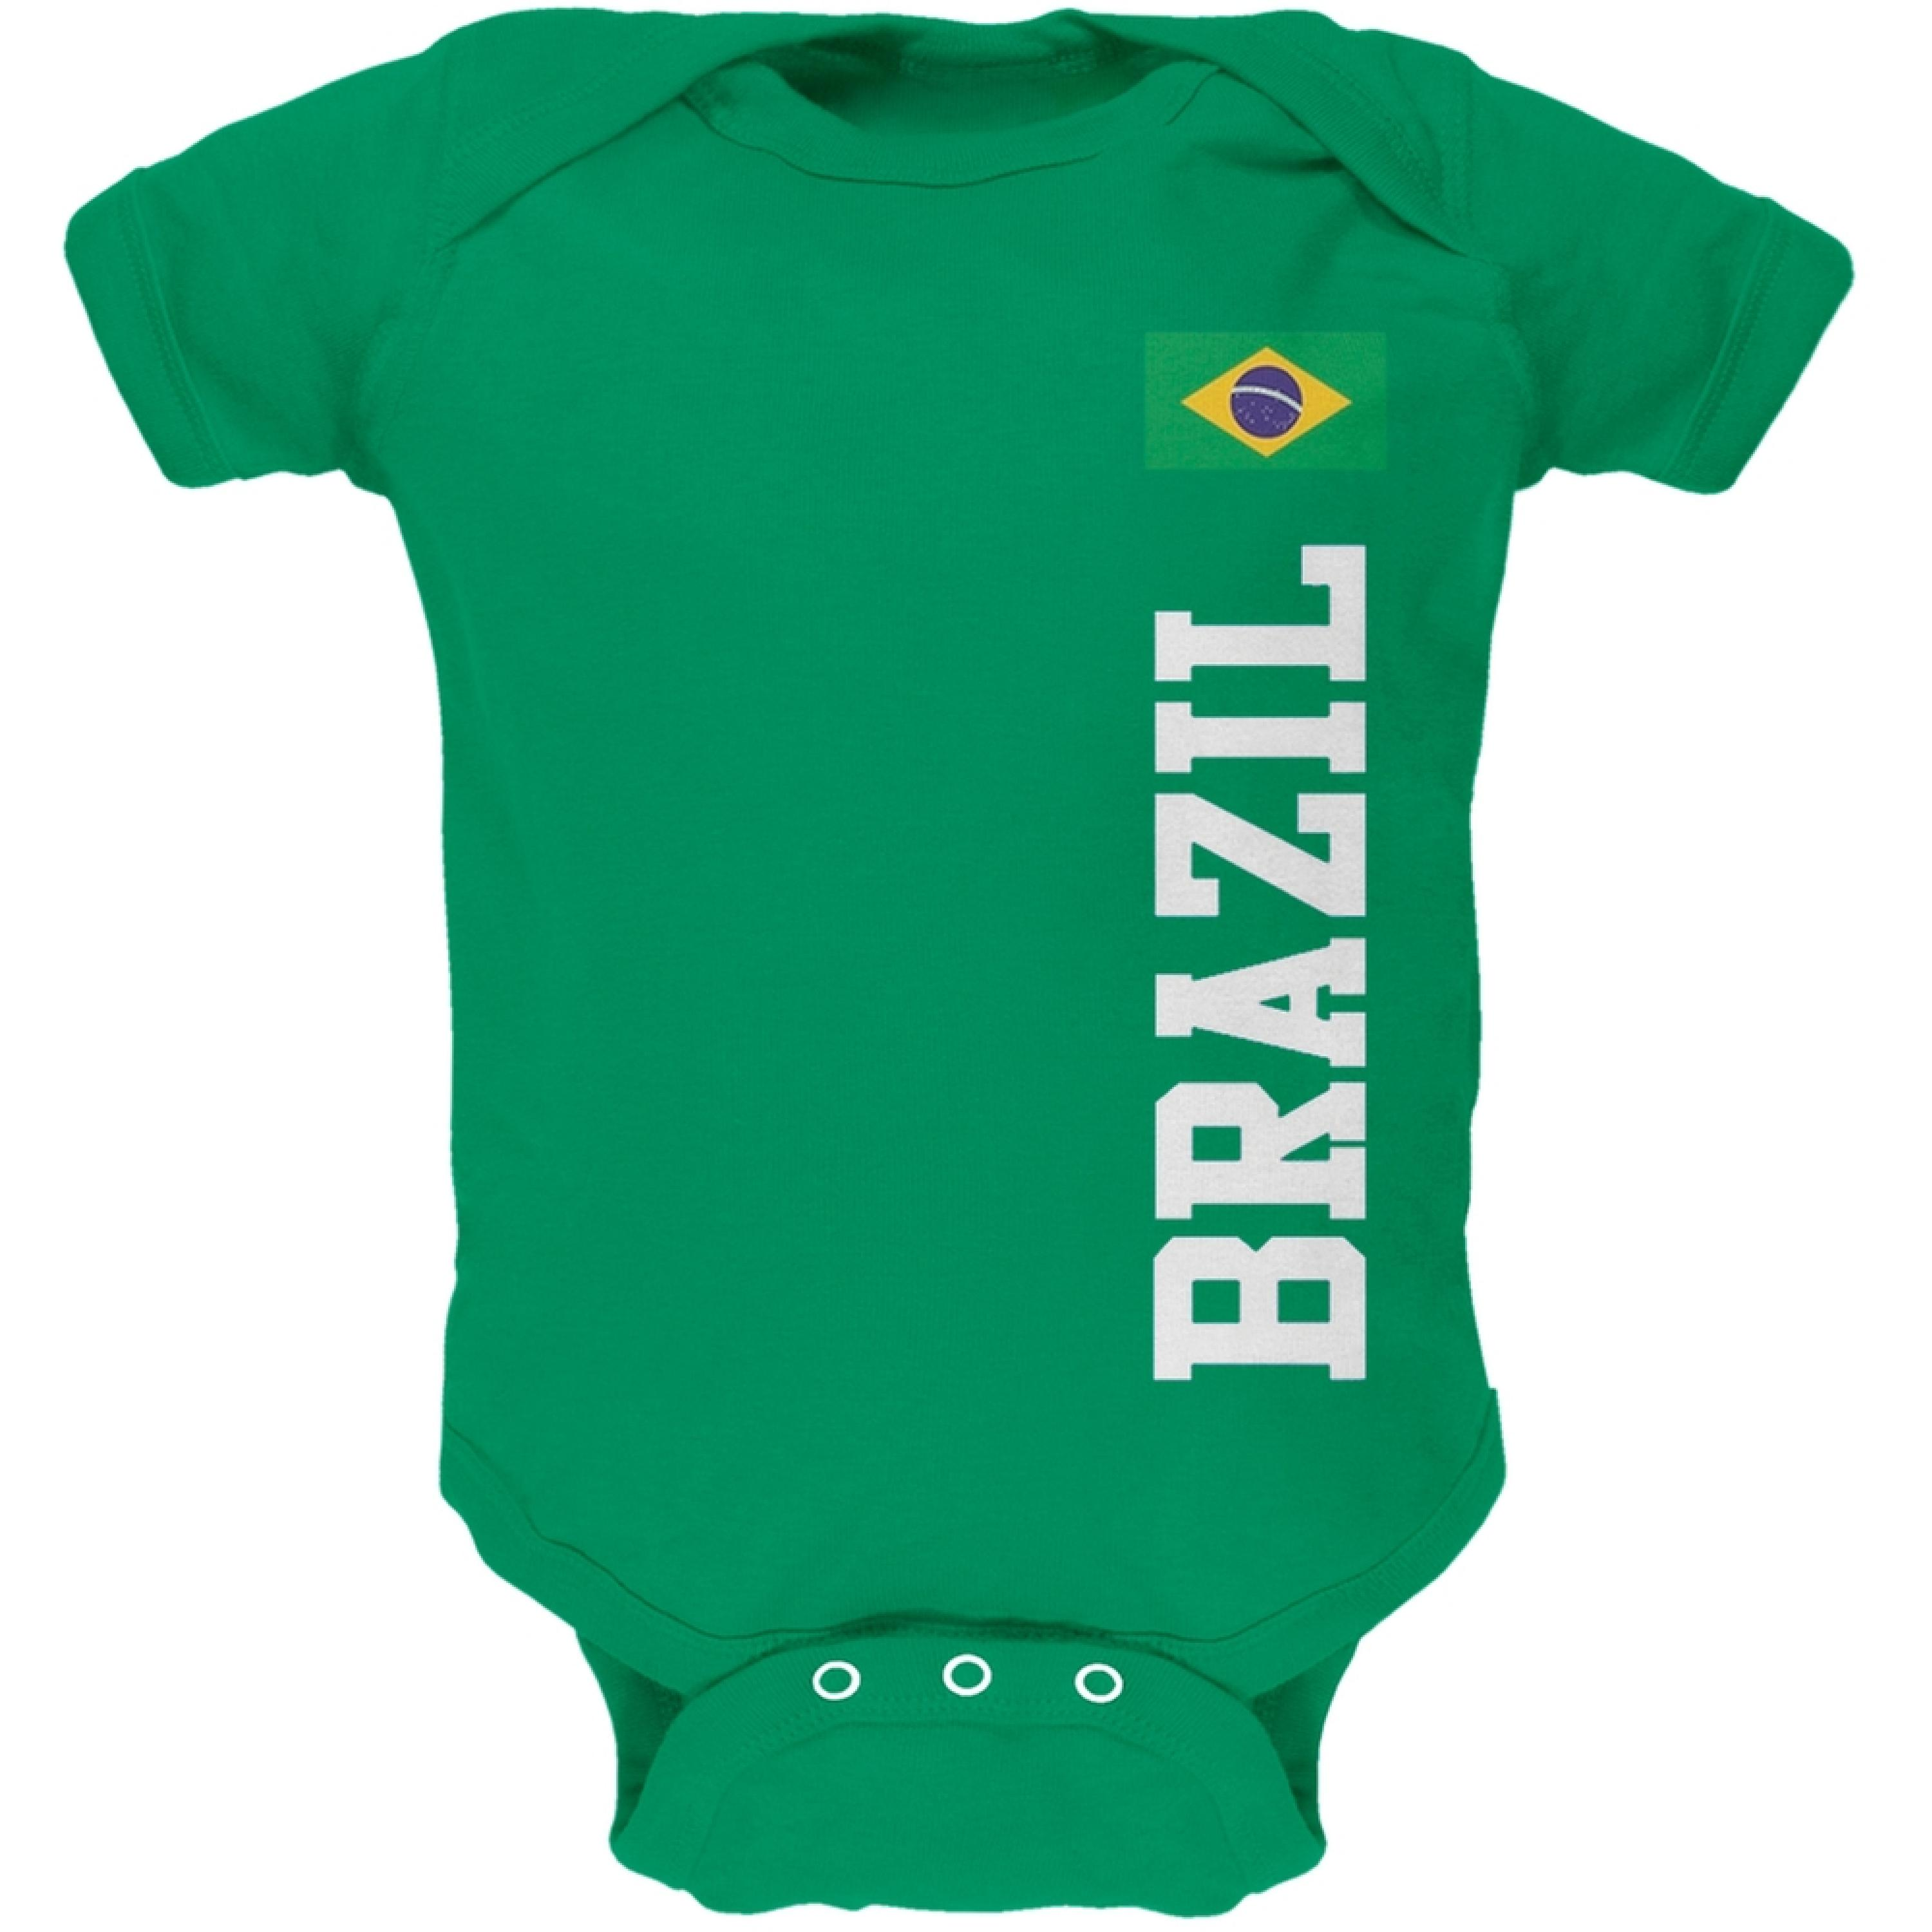 World Cup Brazil Green Baby One Piece